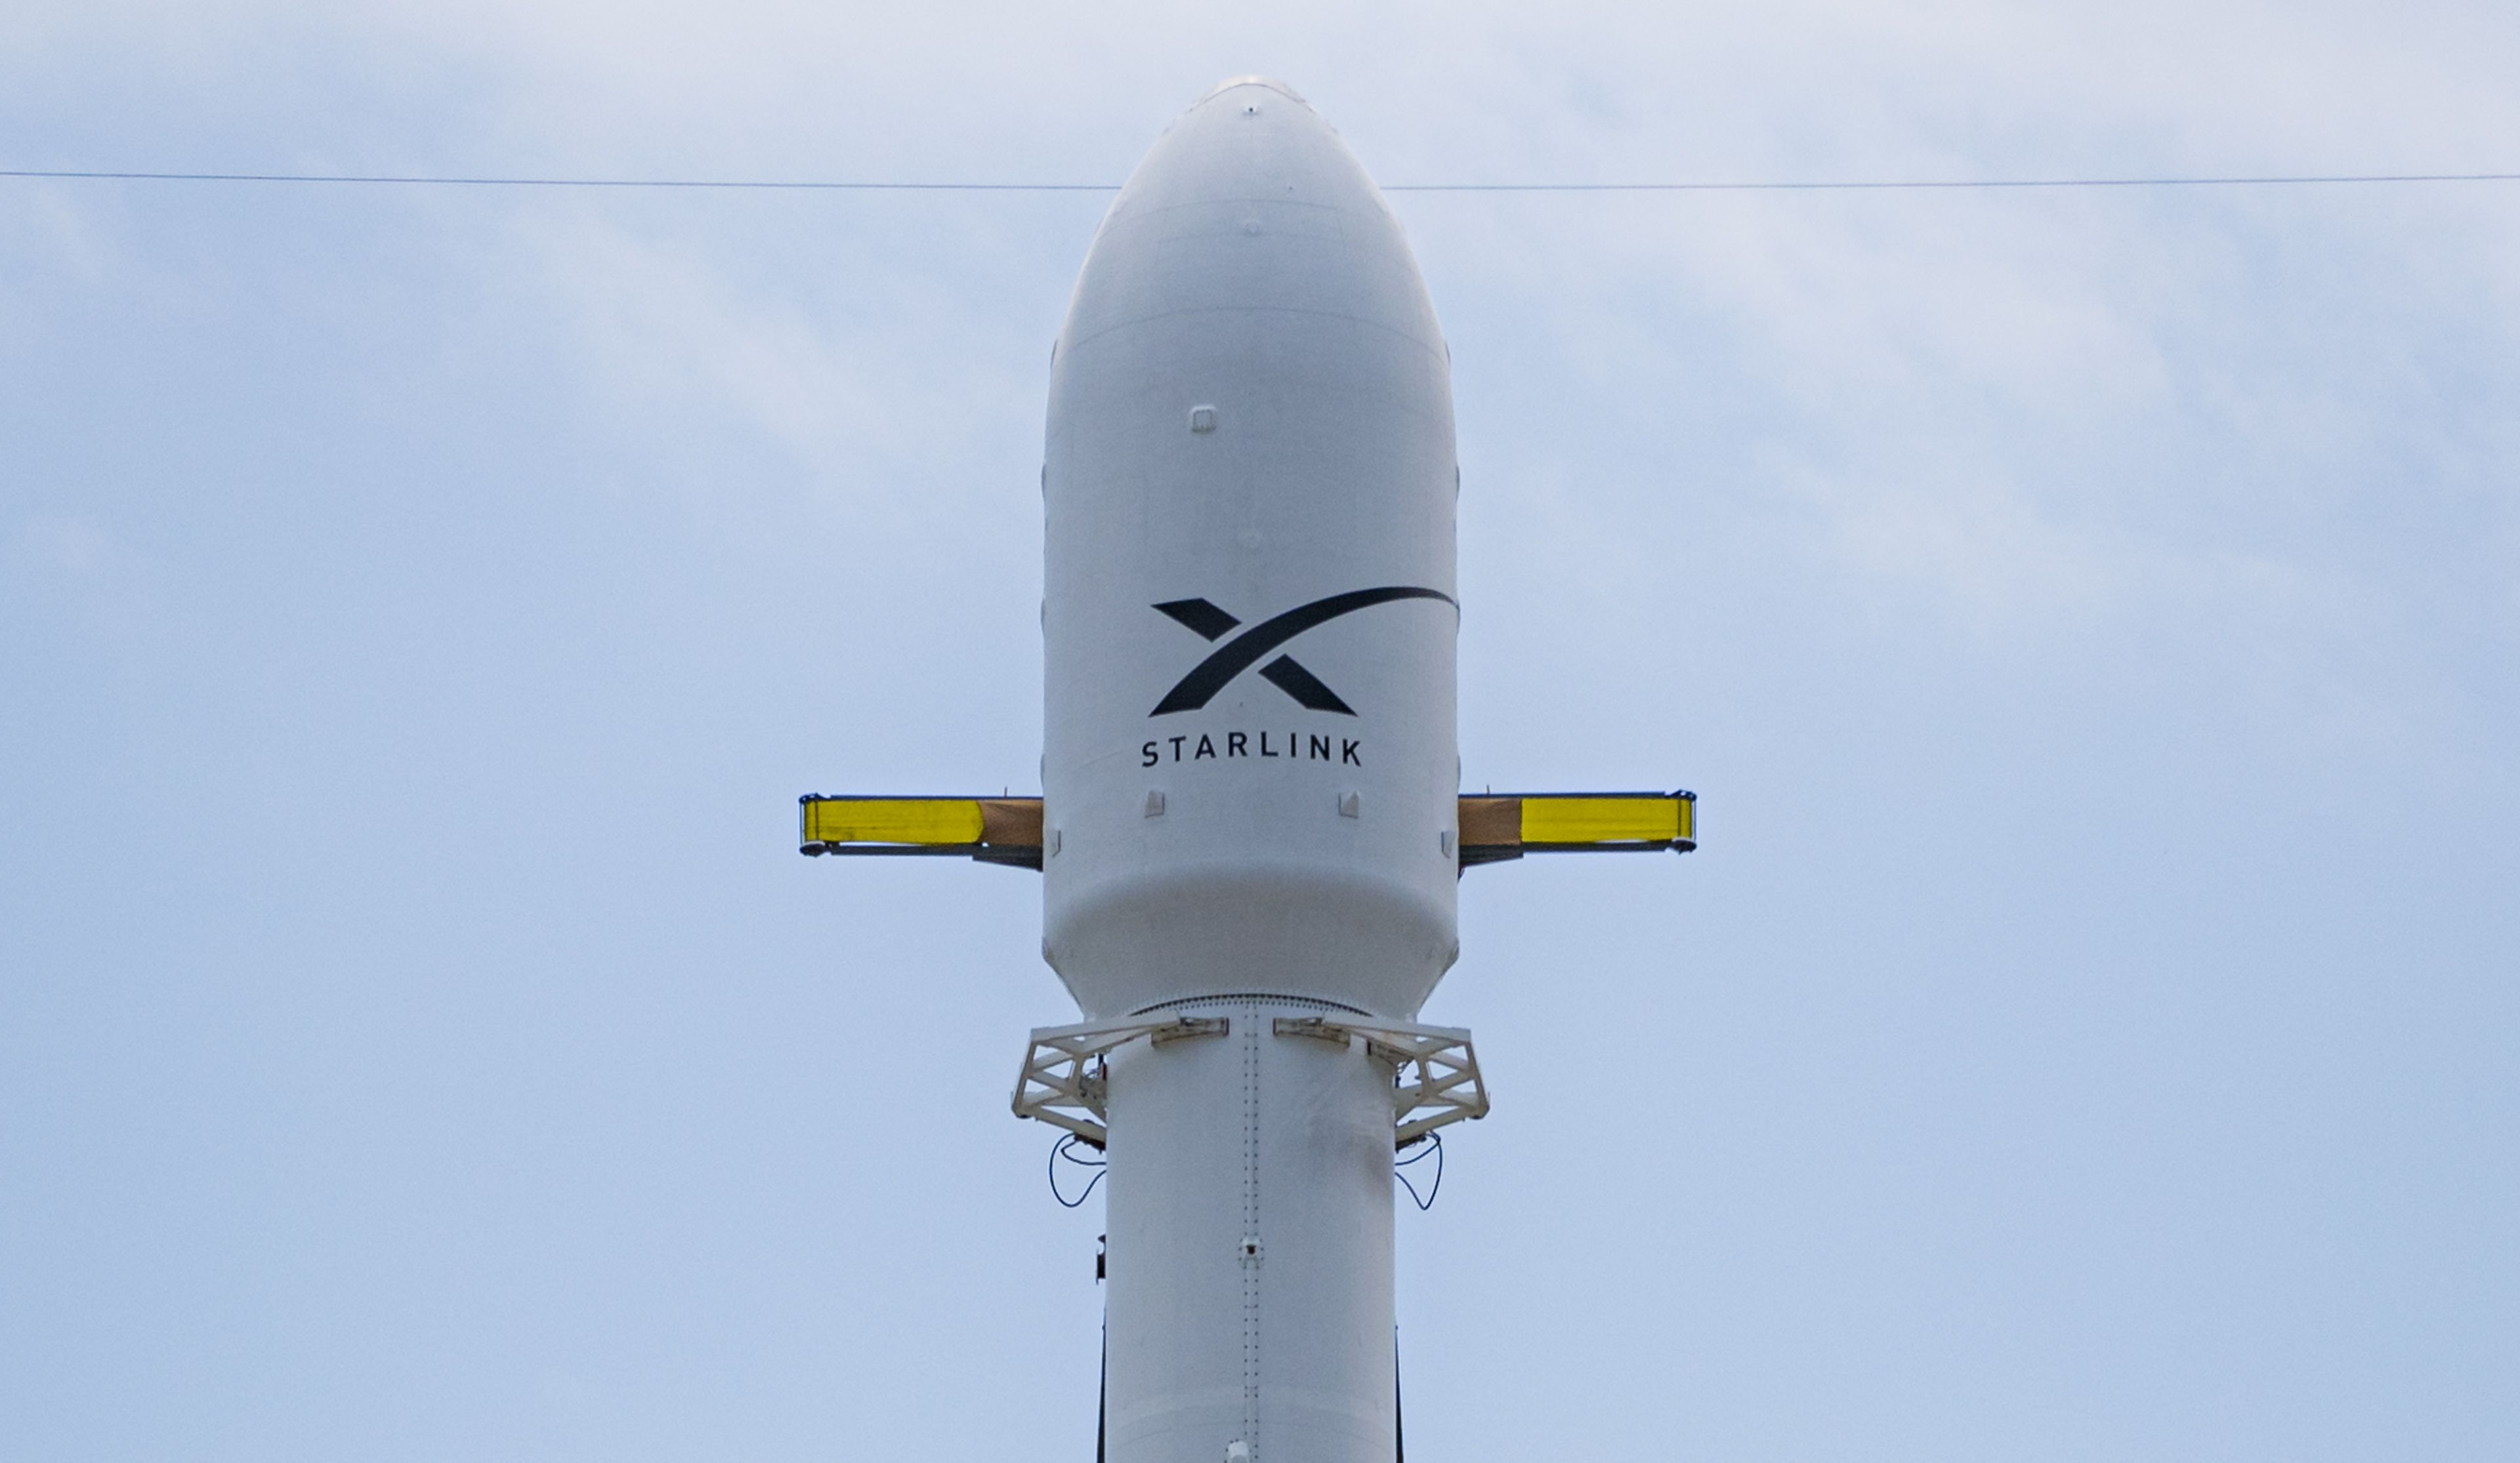 Falcon 9 rocket with a fairing payload carrying Starlink satellites.